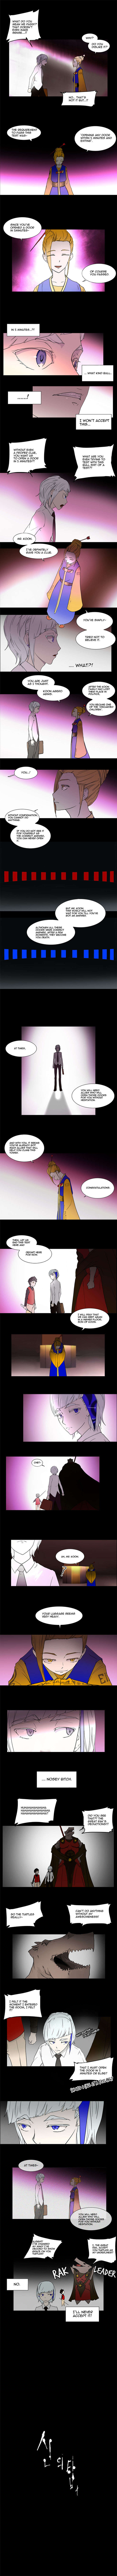 Tower of God 13 Page 2